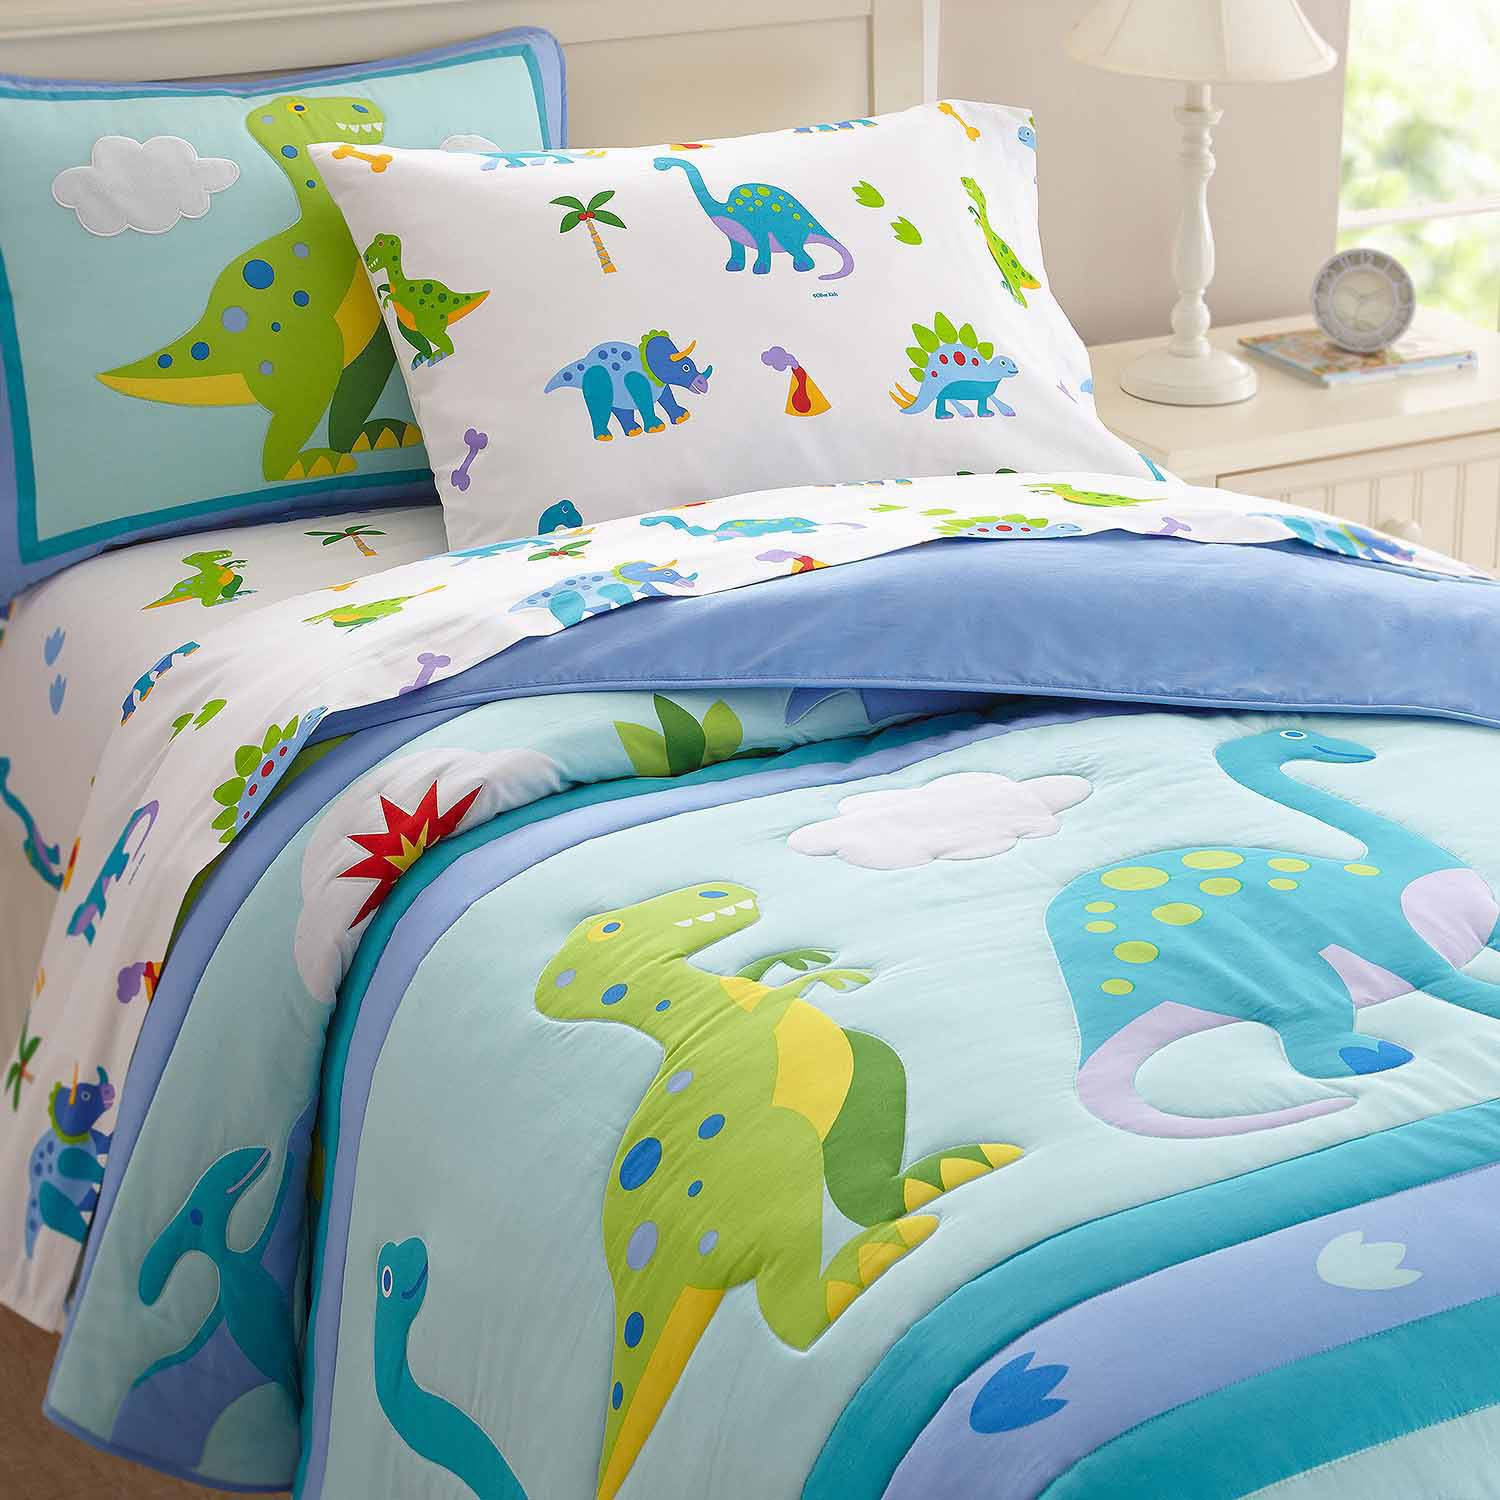 Boys Double Quilt Cover Olive Kids Dinosaur Land Bedding Comforter Set